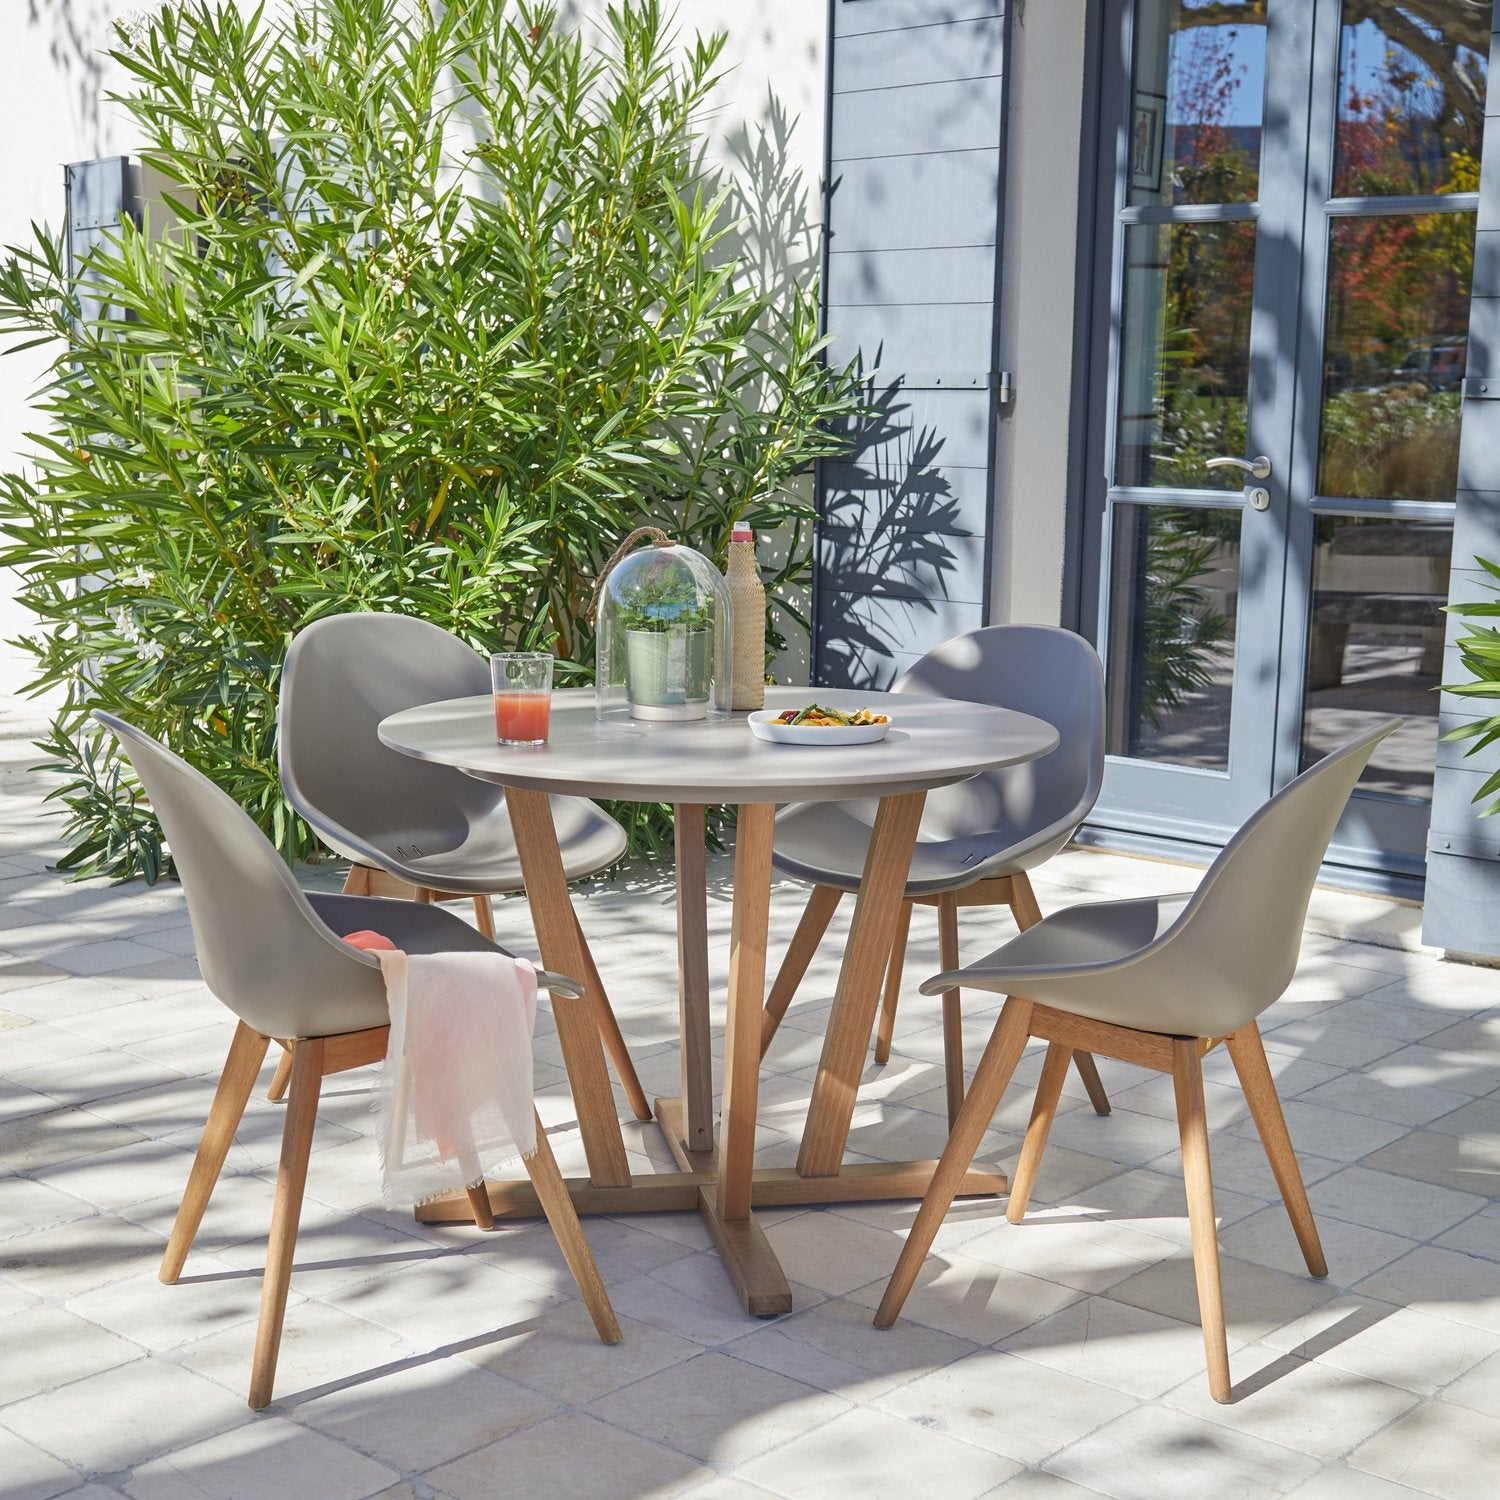 La nouvelle collection de salon de jardin 2018